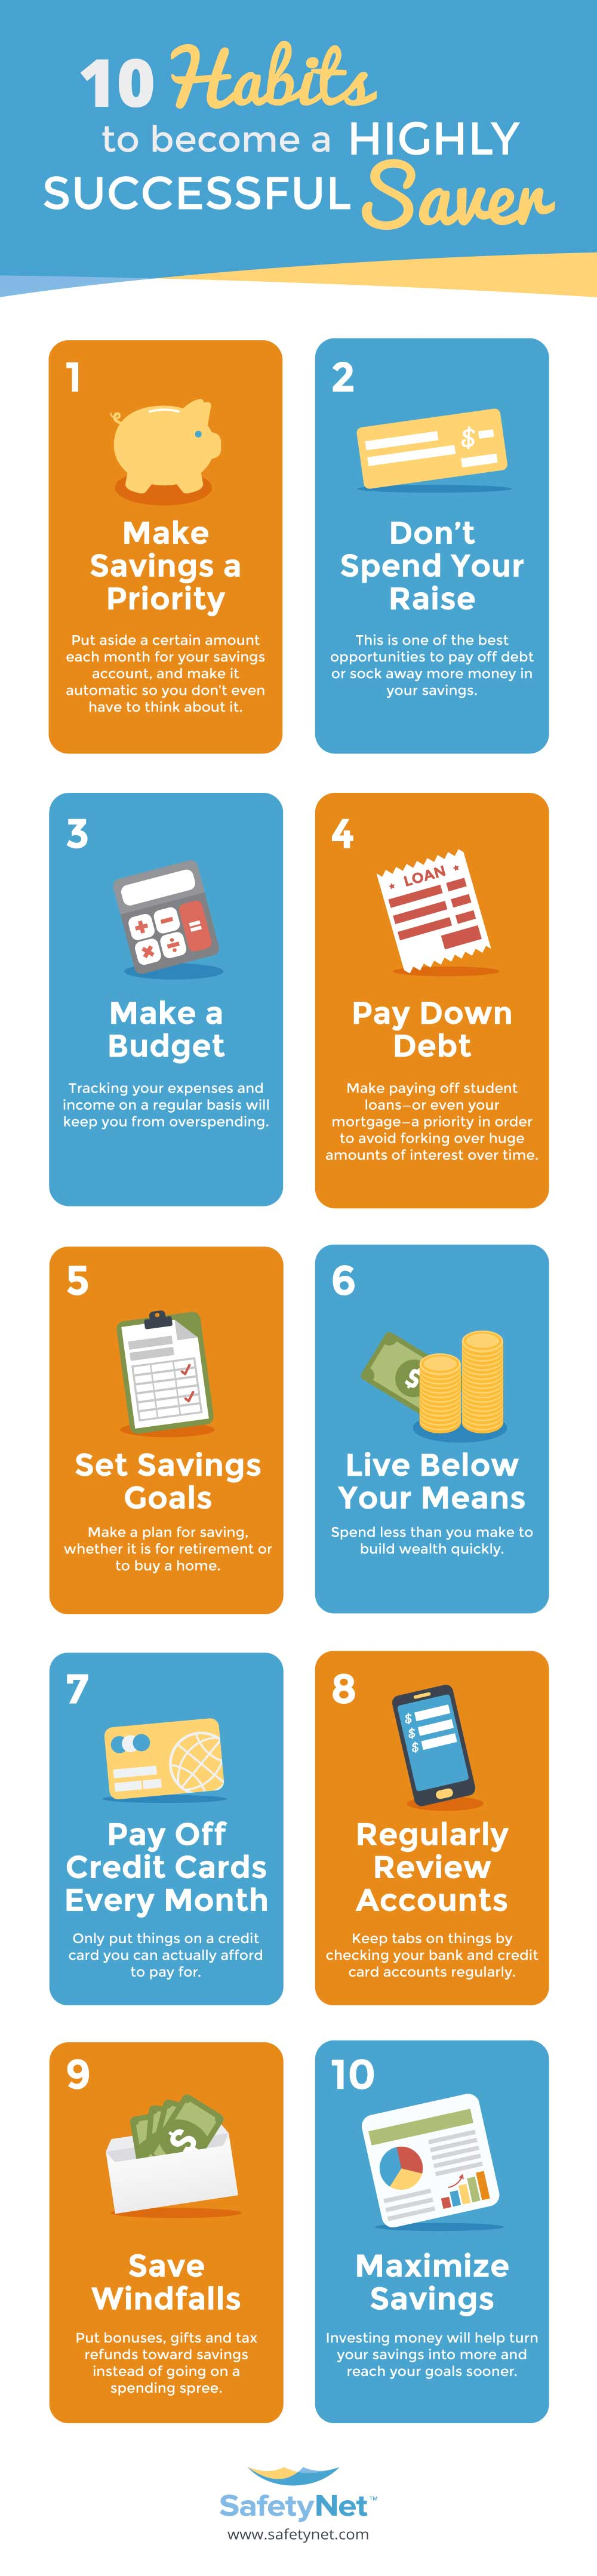 To Build Wealth, Learn to Save: 10 Habits of Highly Successful Savers - Infographic